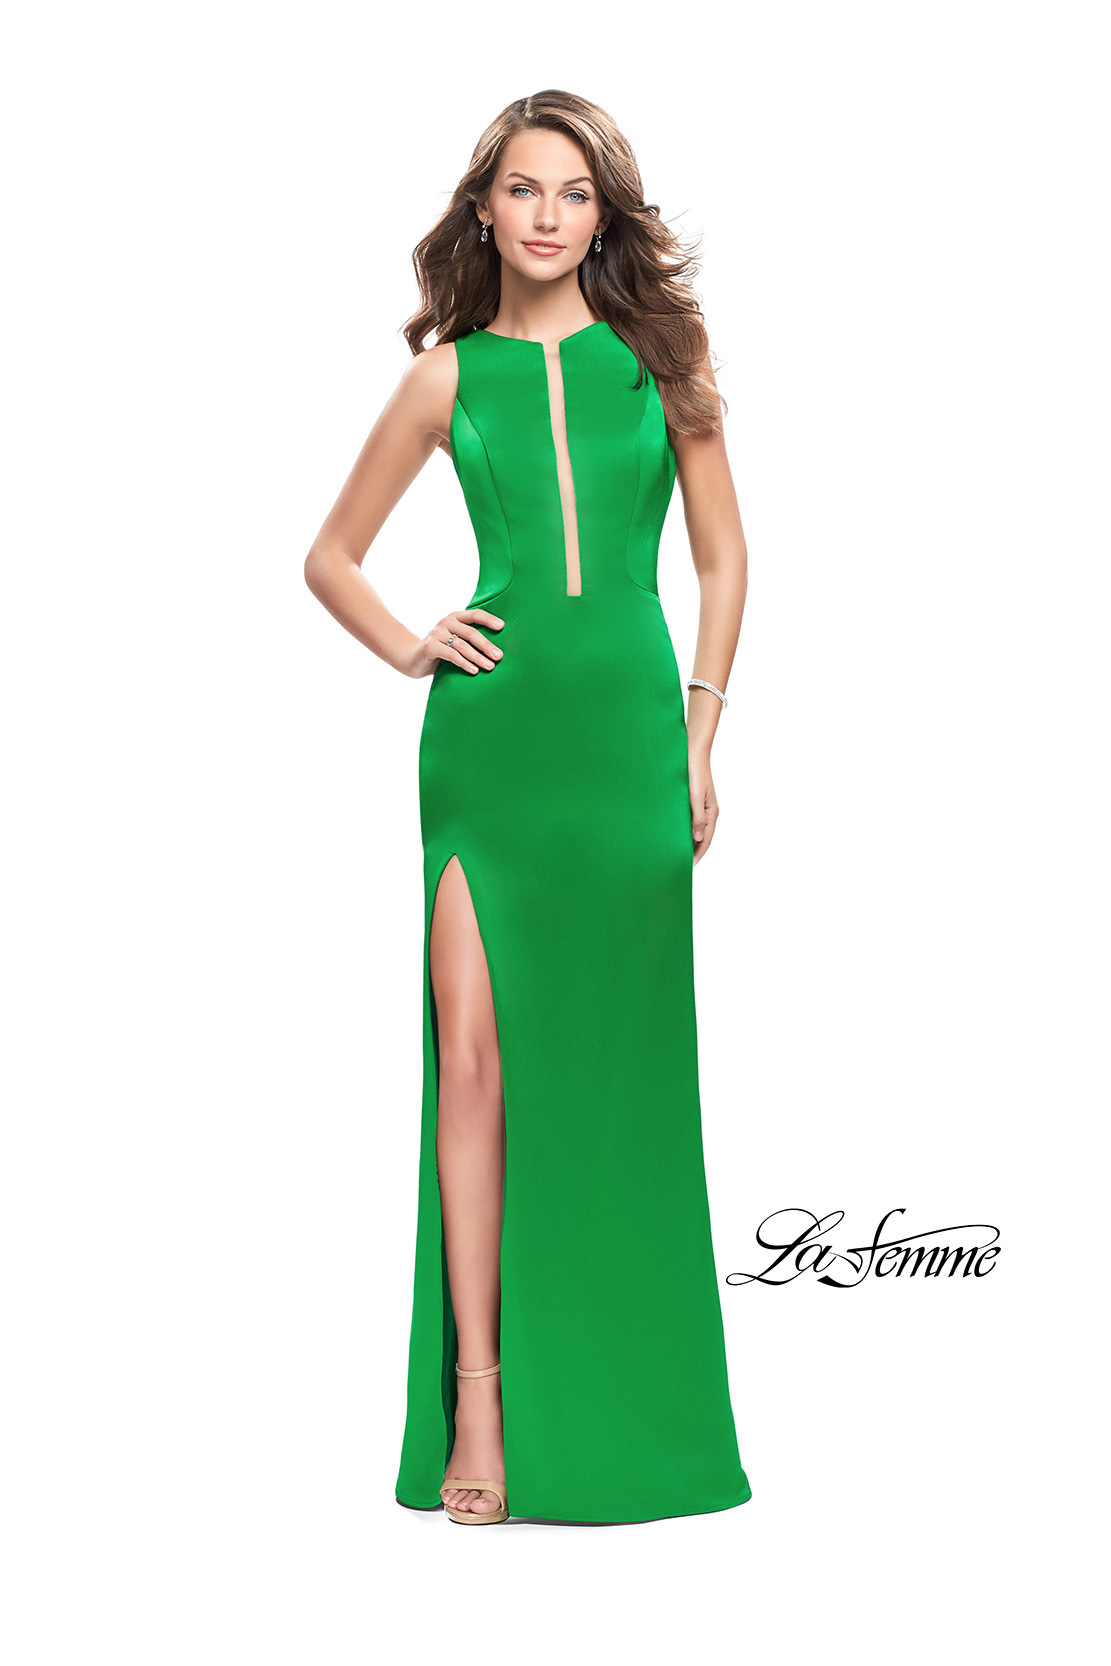 Green Prom Dress with Open Strappy Back by La Femme Style 26235